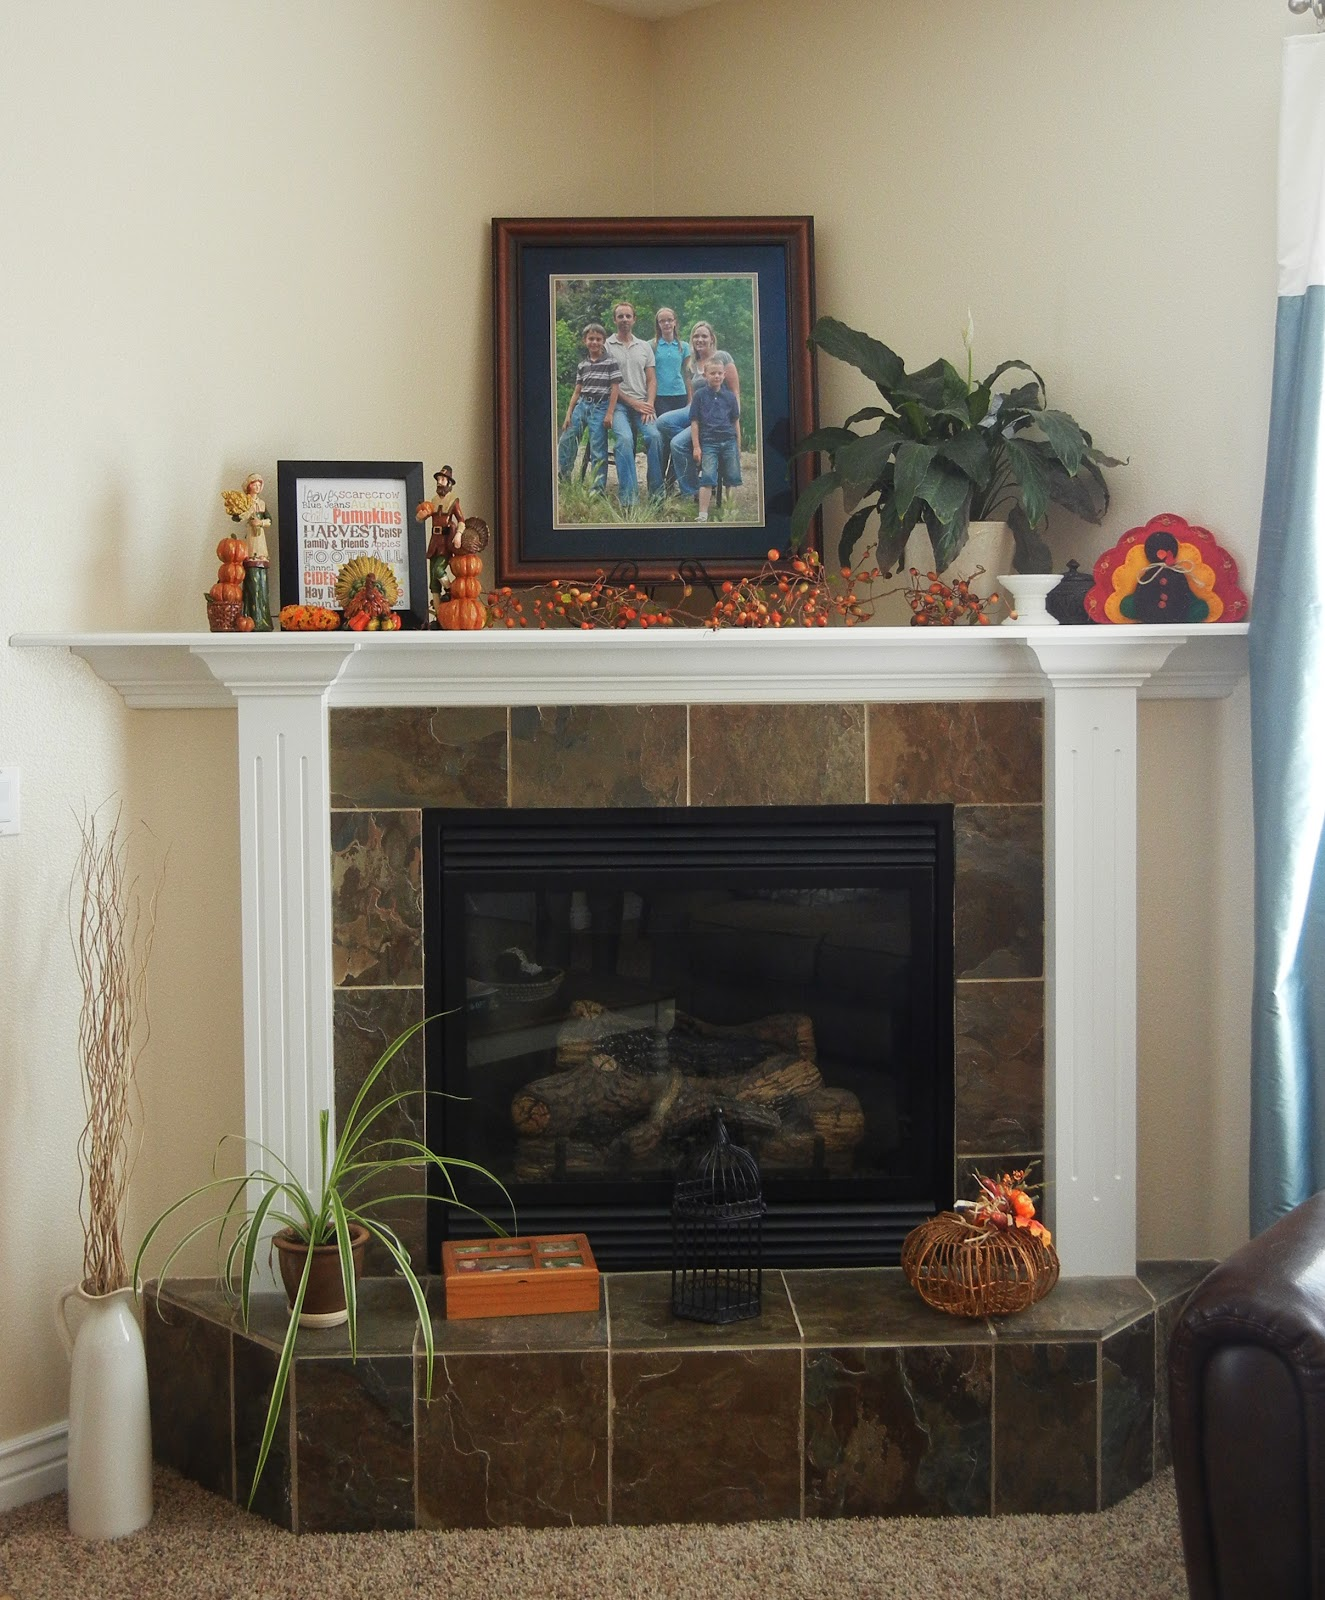 Radiant Your Family Time Ideas Homes Fireplace Design Ideas Your Family Time Ideas Fireplace Ideas Tile Stove Fireplace Ideas Fireplace Design Ideas houzz 01 Corner Fireplace Ideas